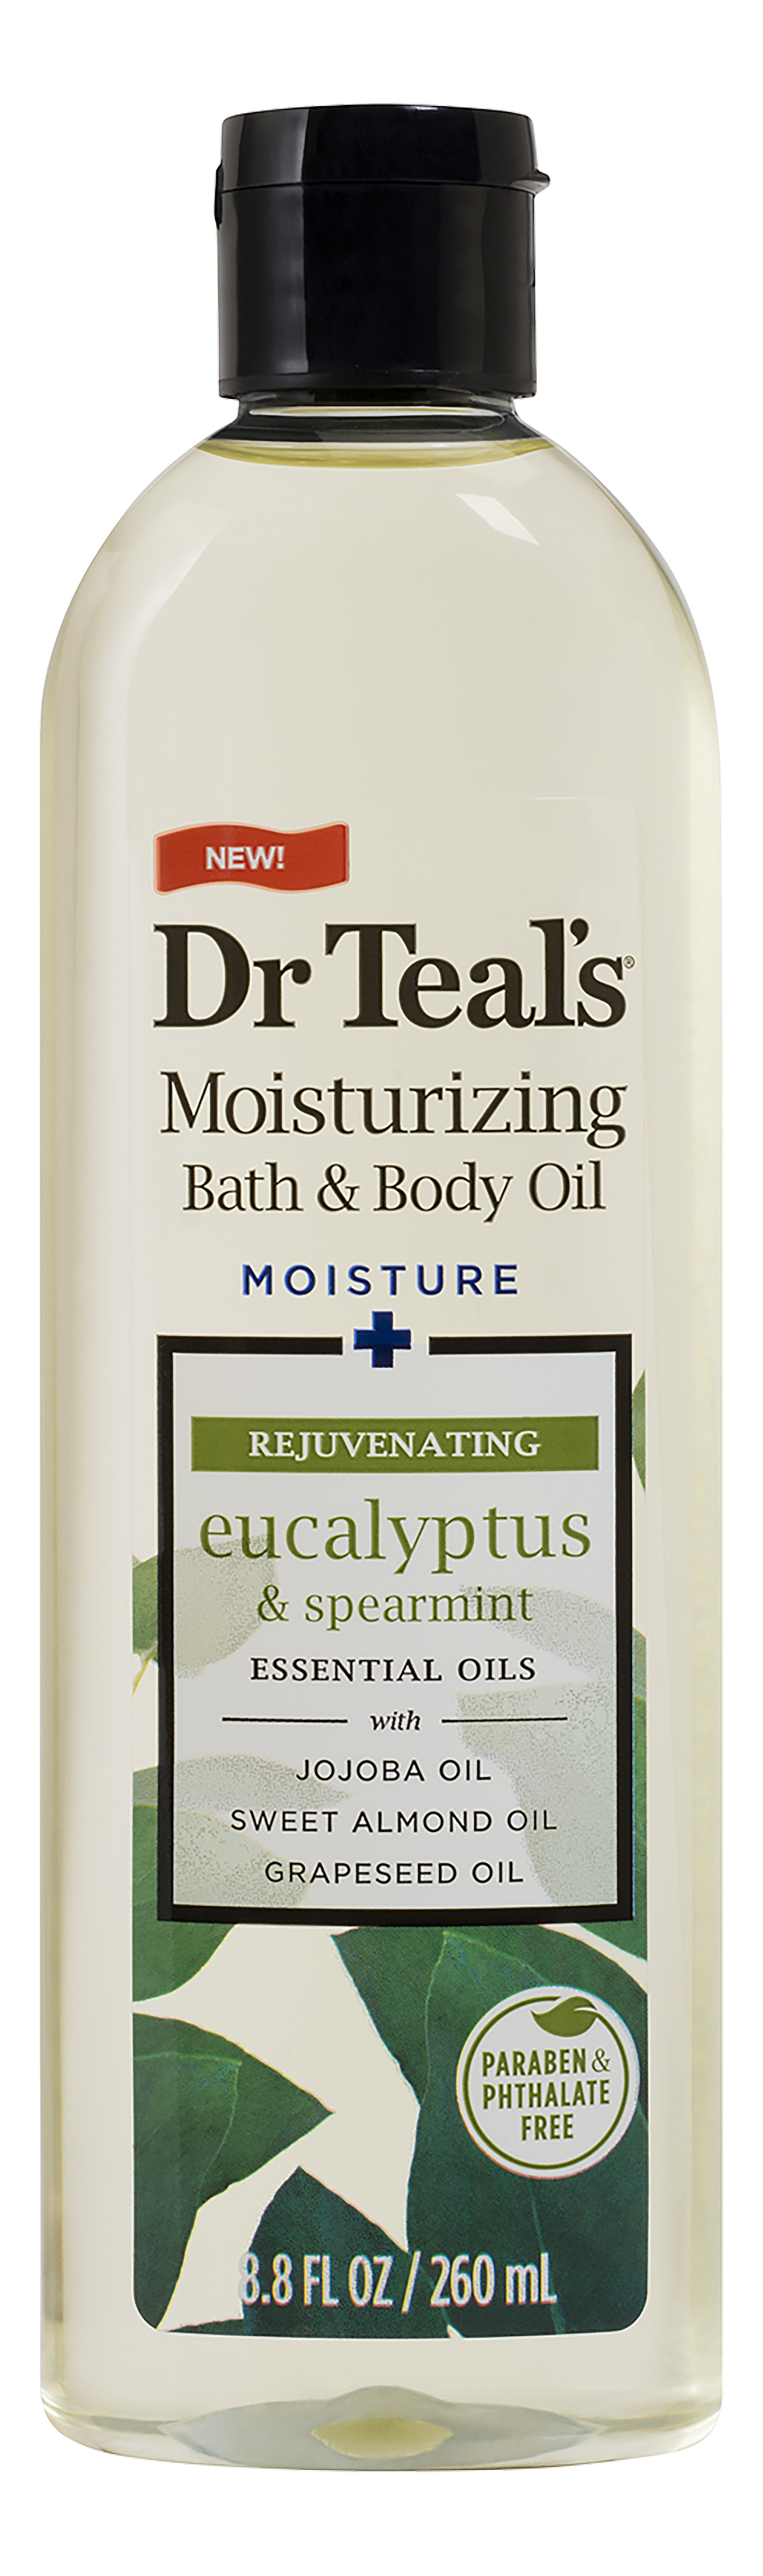 Dr. Teal's Relax & Relief With Eucalyptus & Spearmint Body Oil